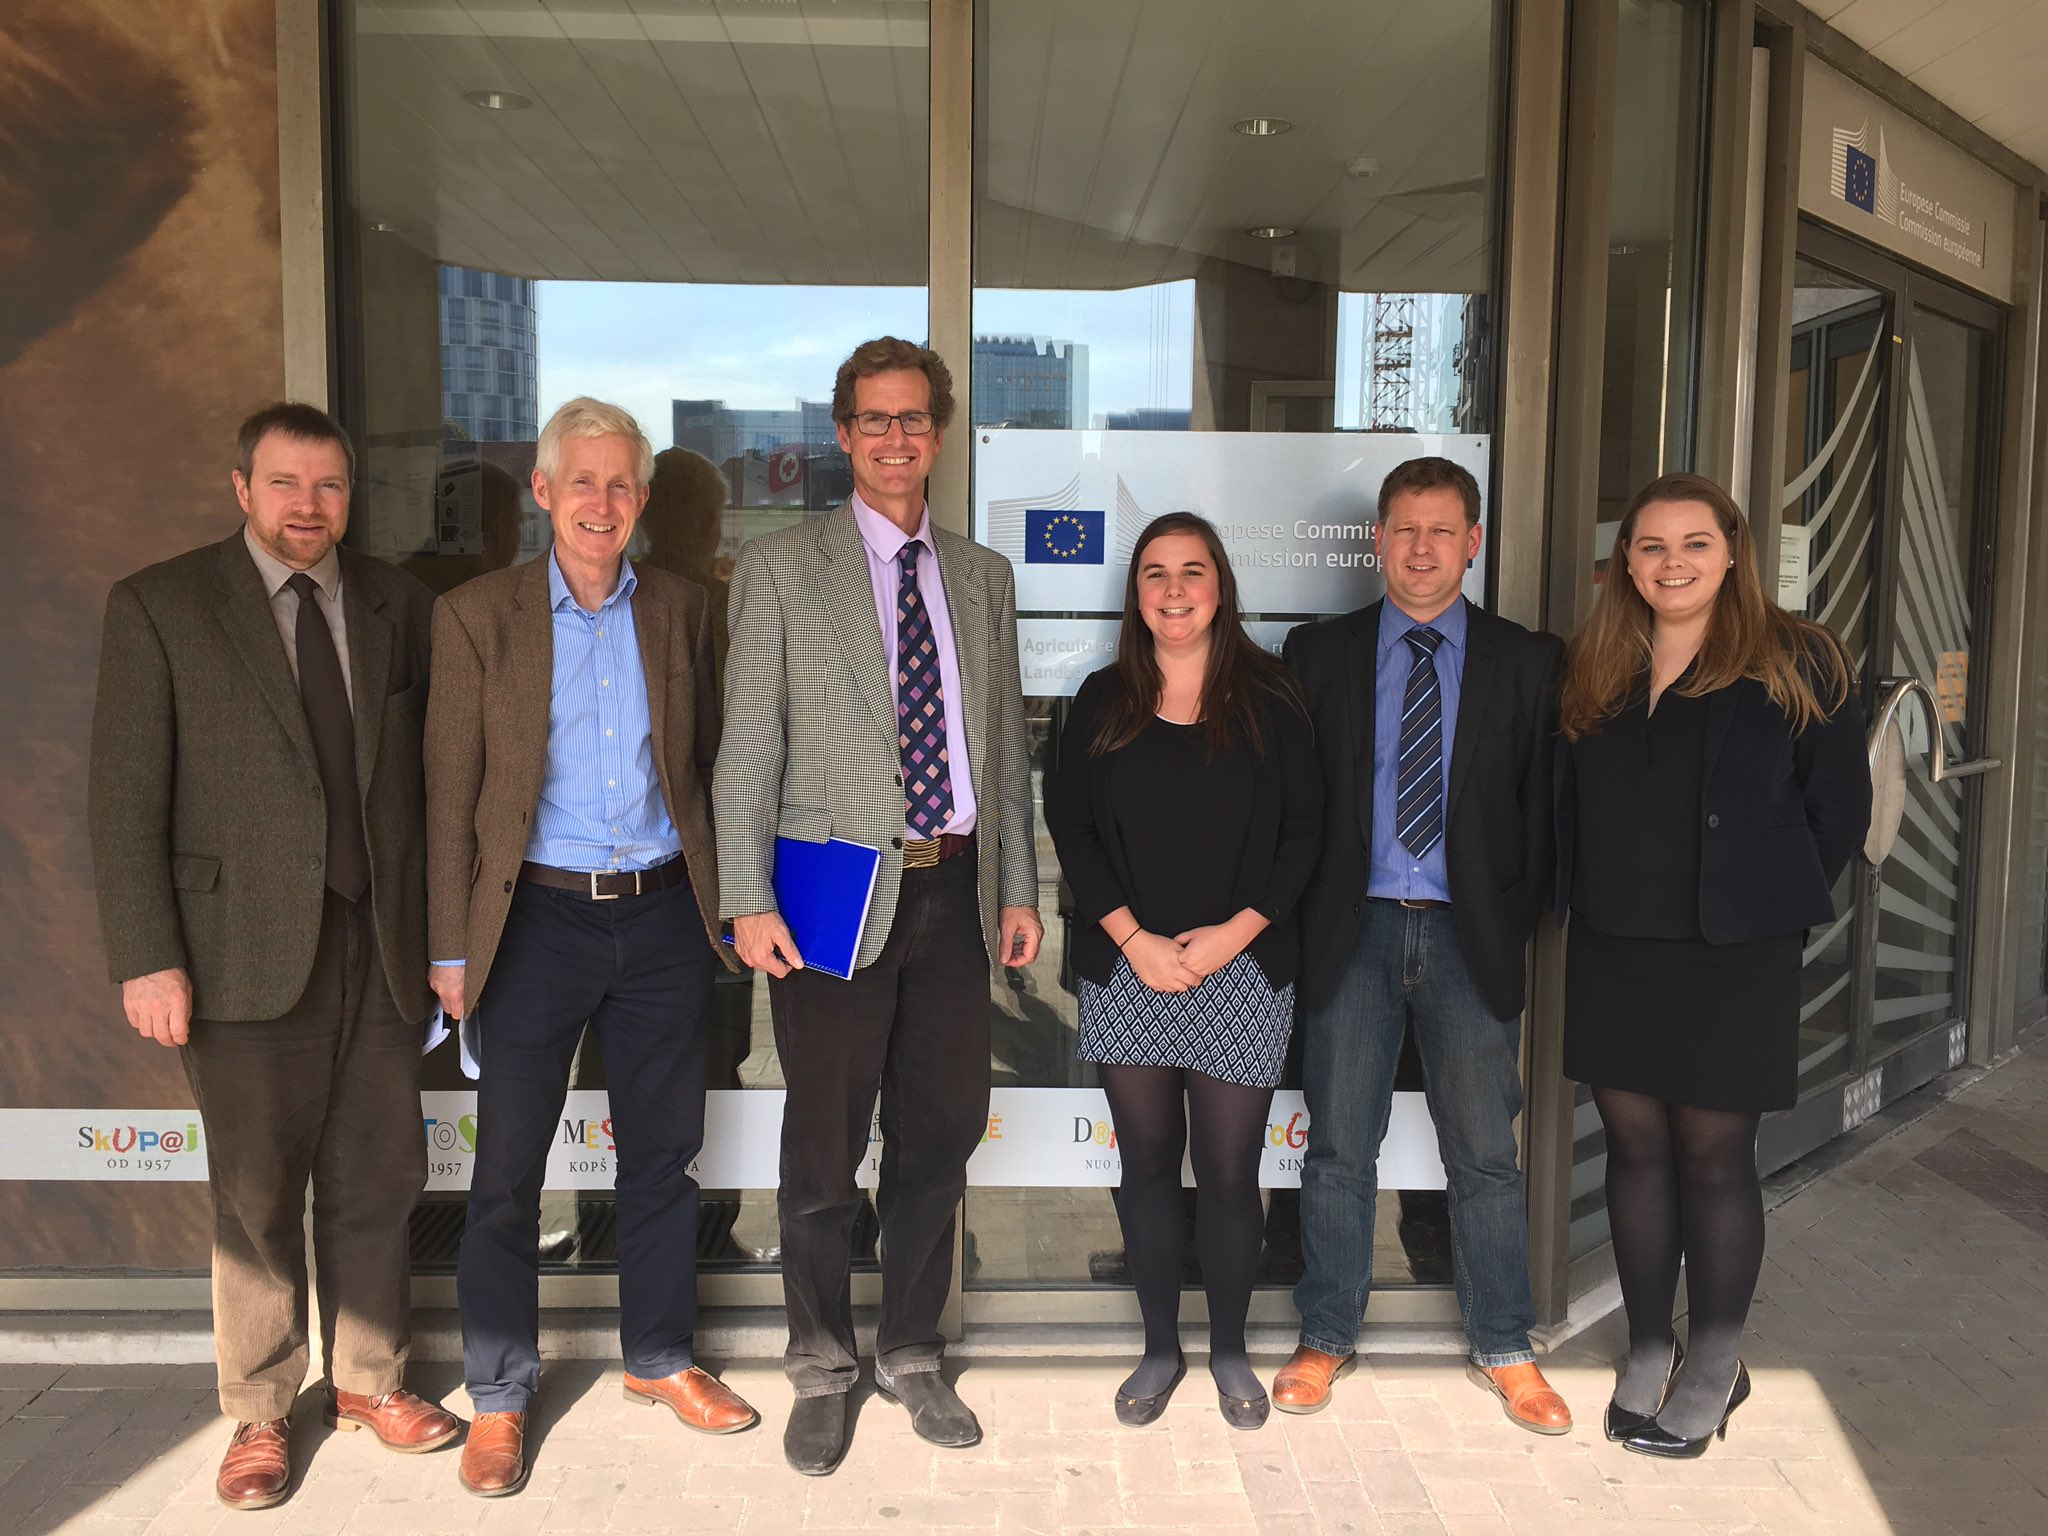 Representatives from Humphrey Feeds & Pullets travel to Brussels to urge the EU Commission to extend poultry derogations